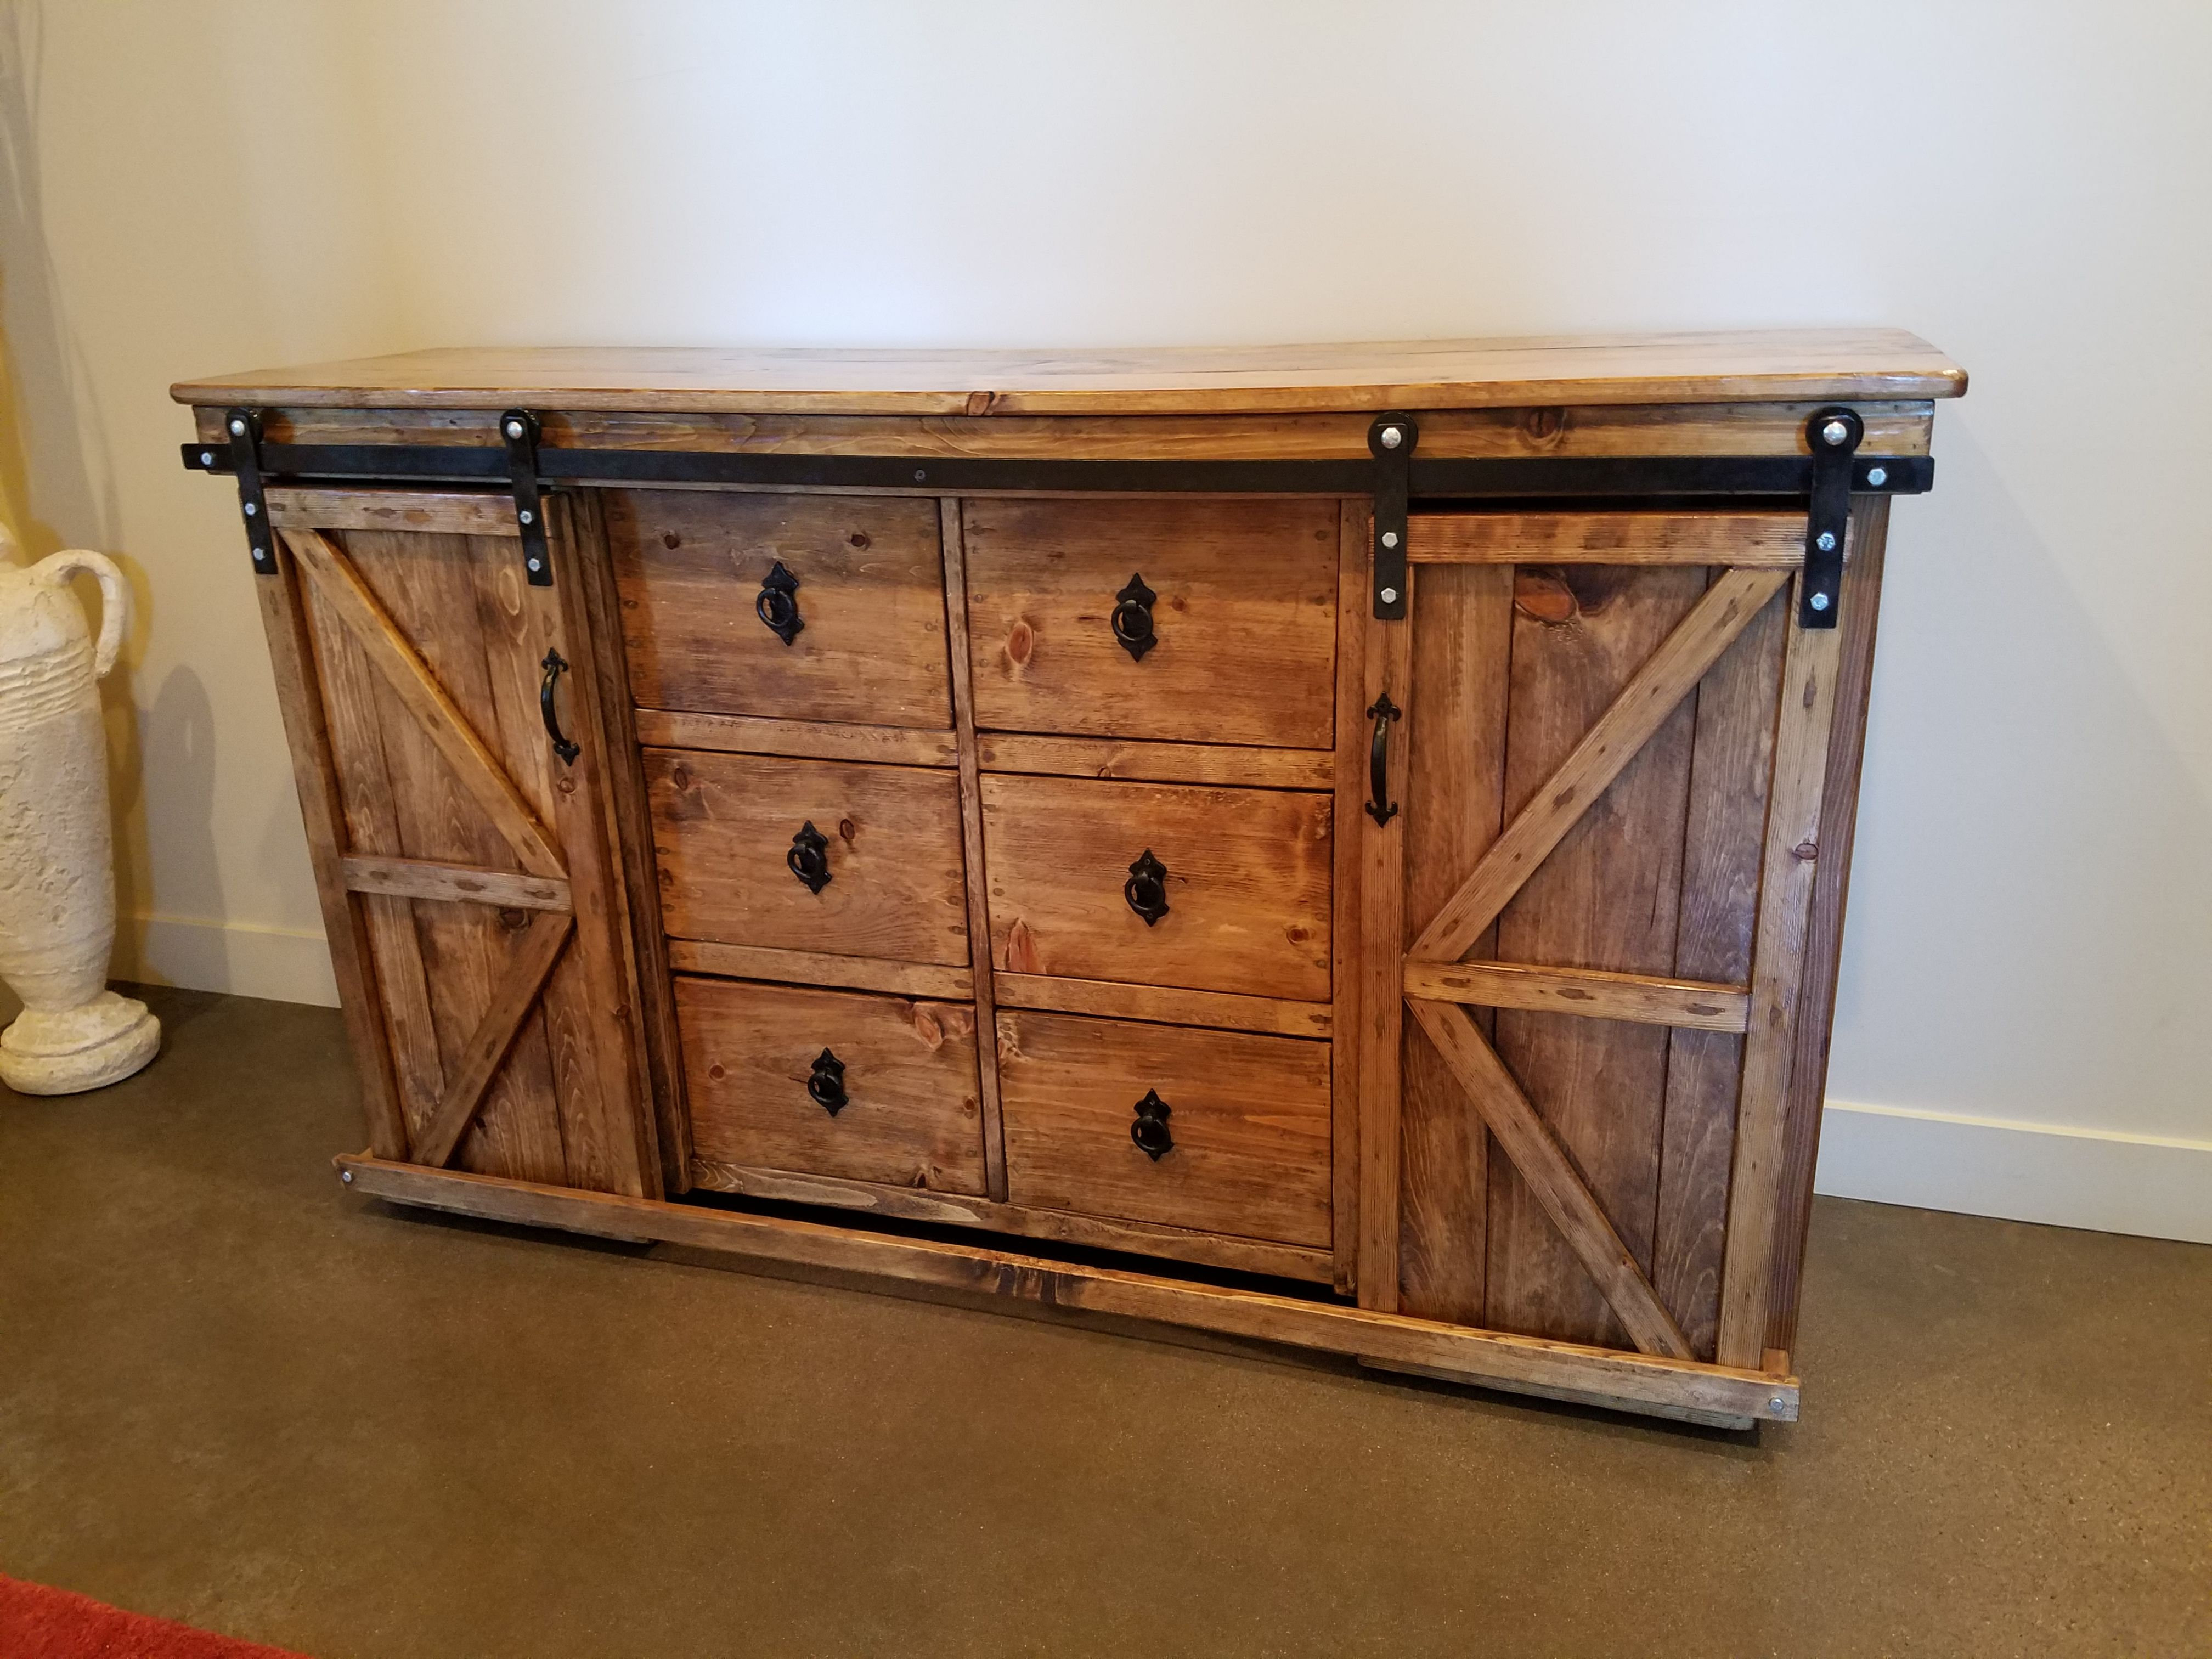 Rustic entry or dresser with British style sliding